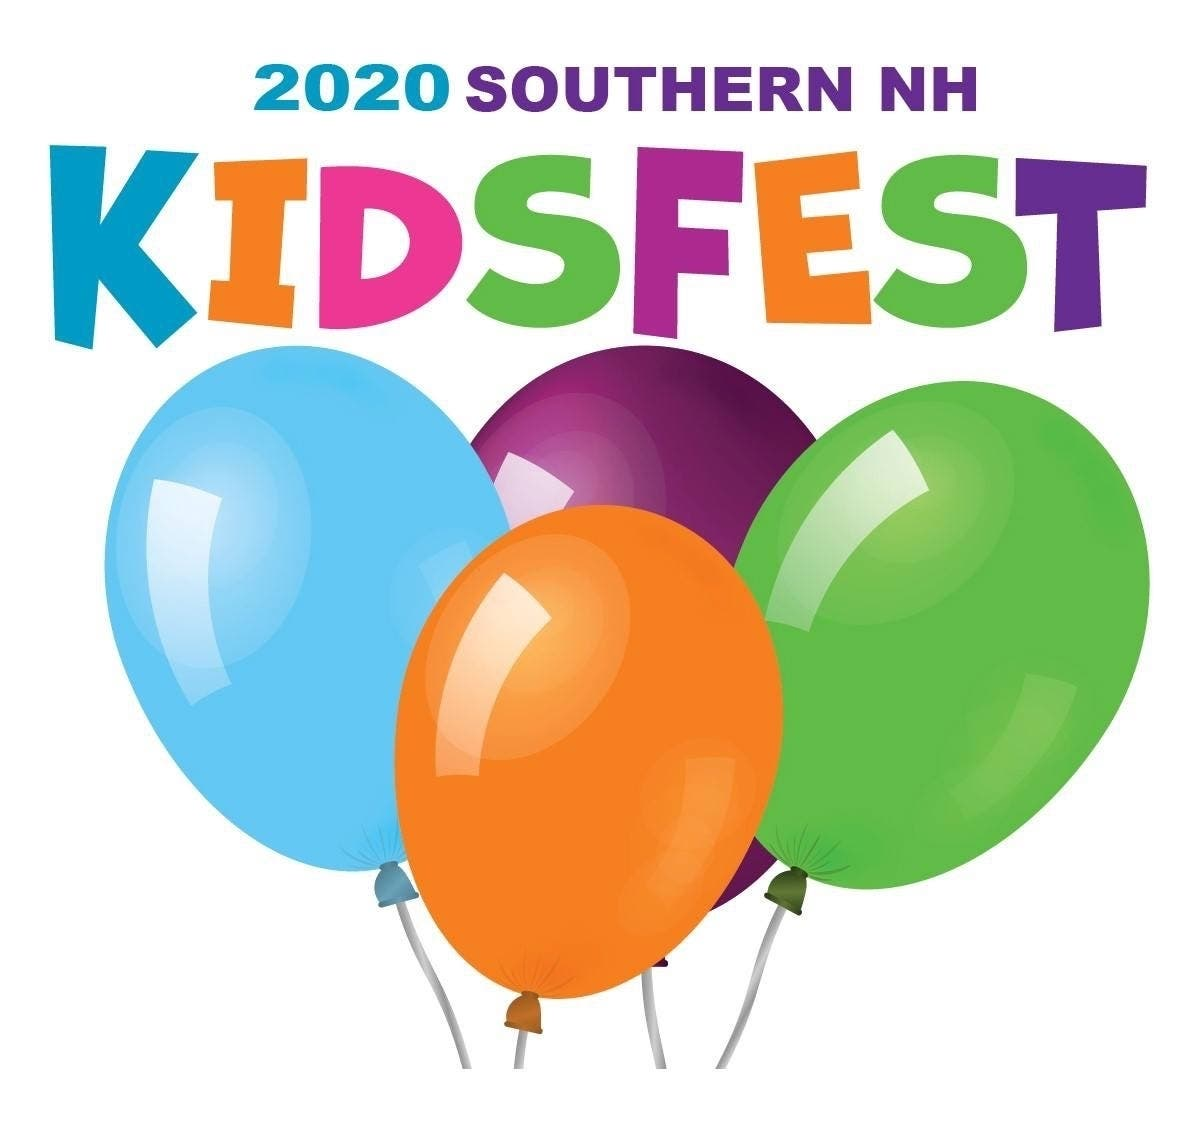 Southern NH Kidsfest, Saturday, March 7